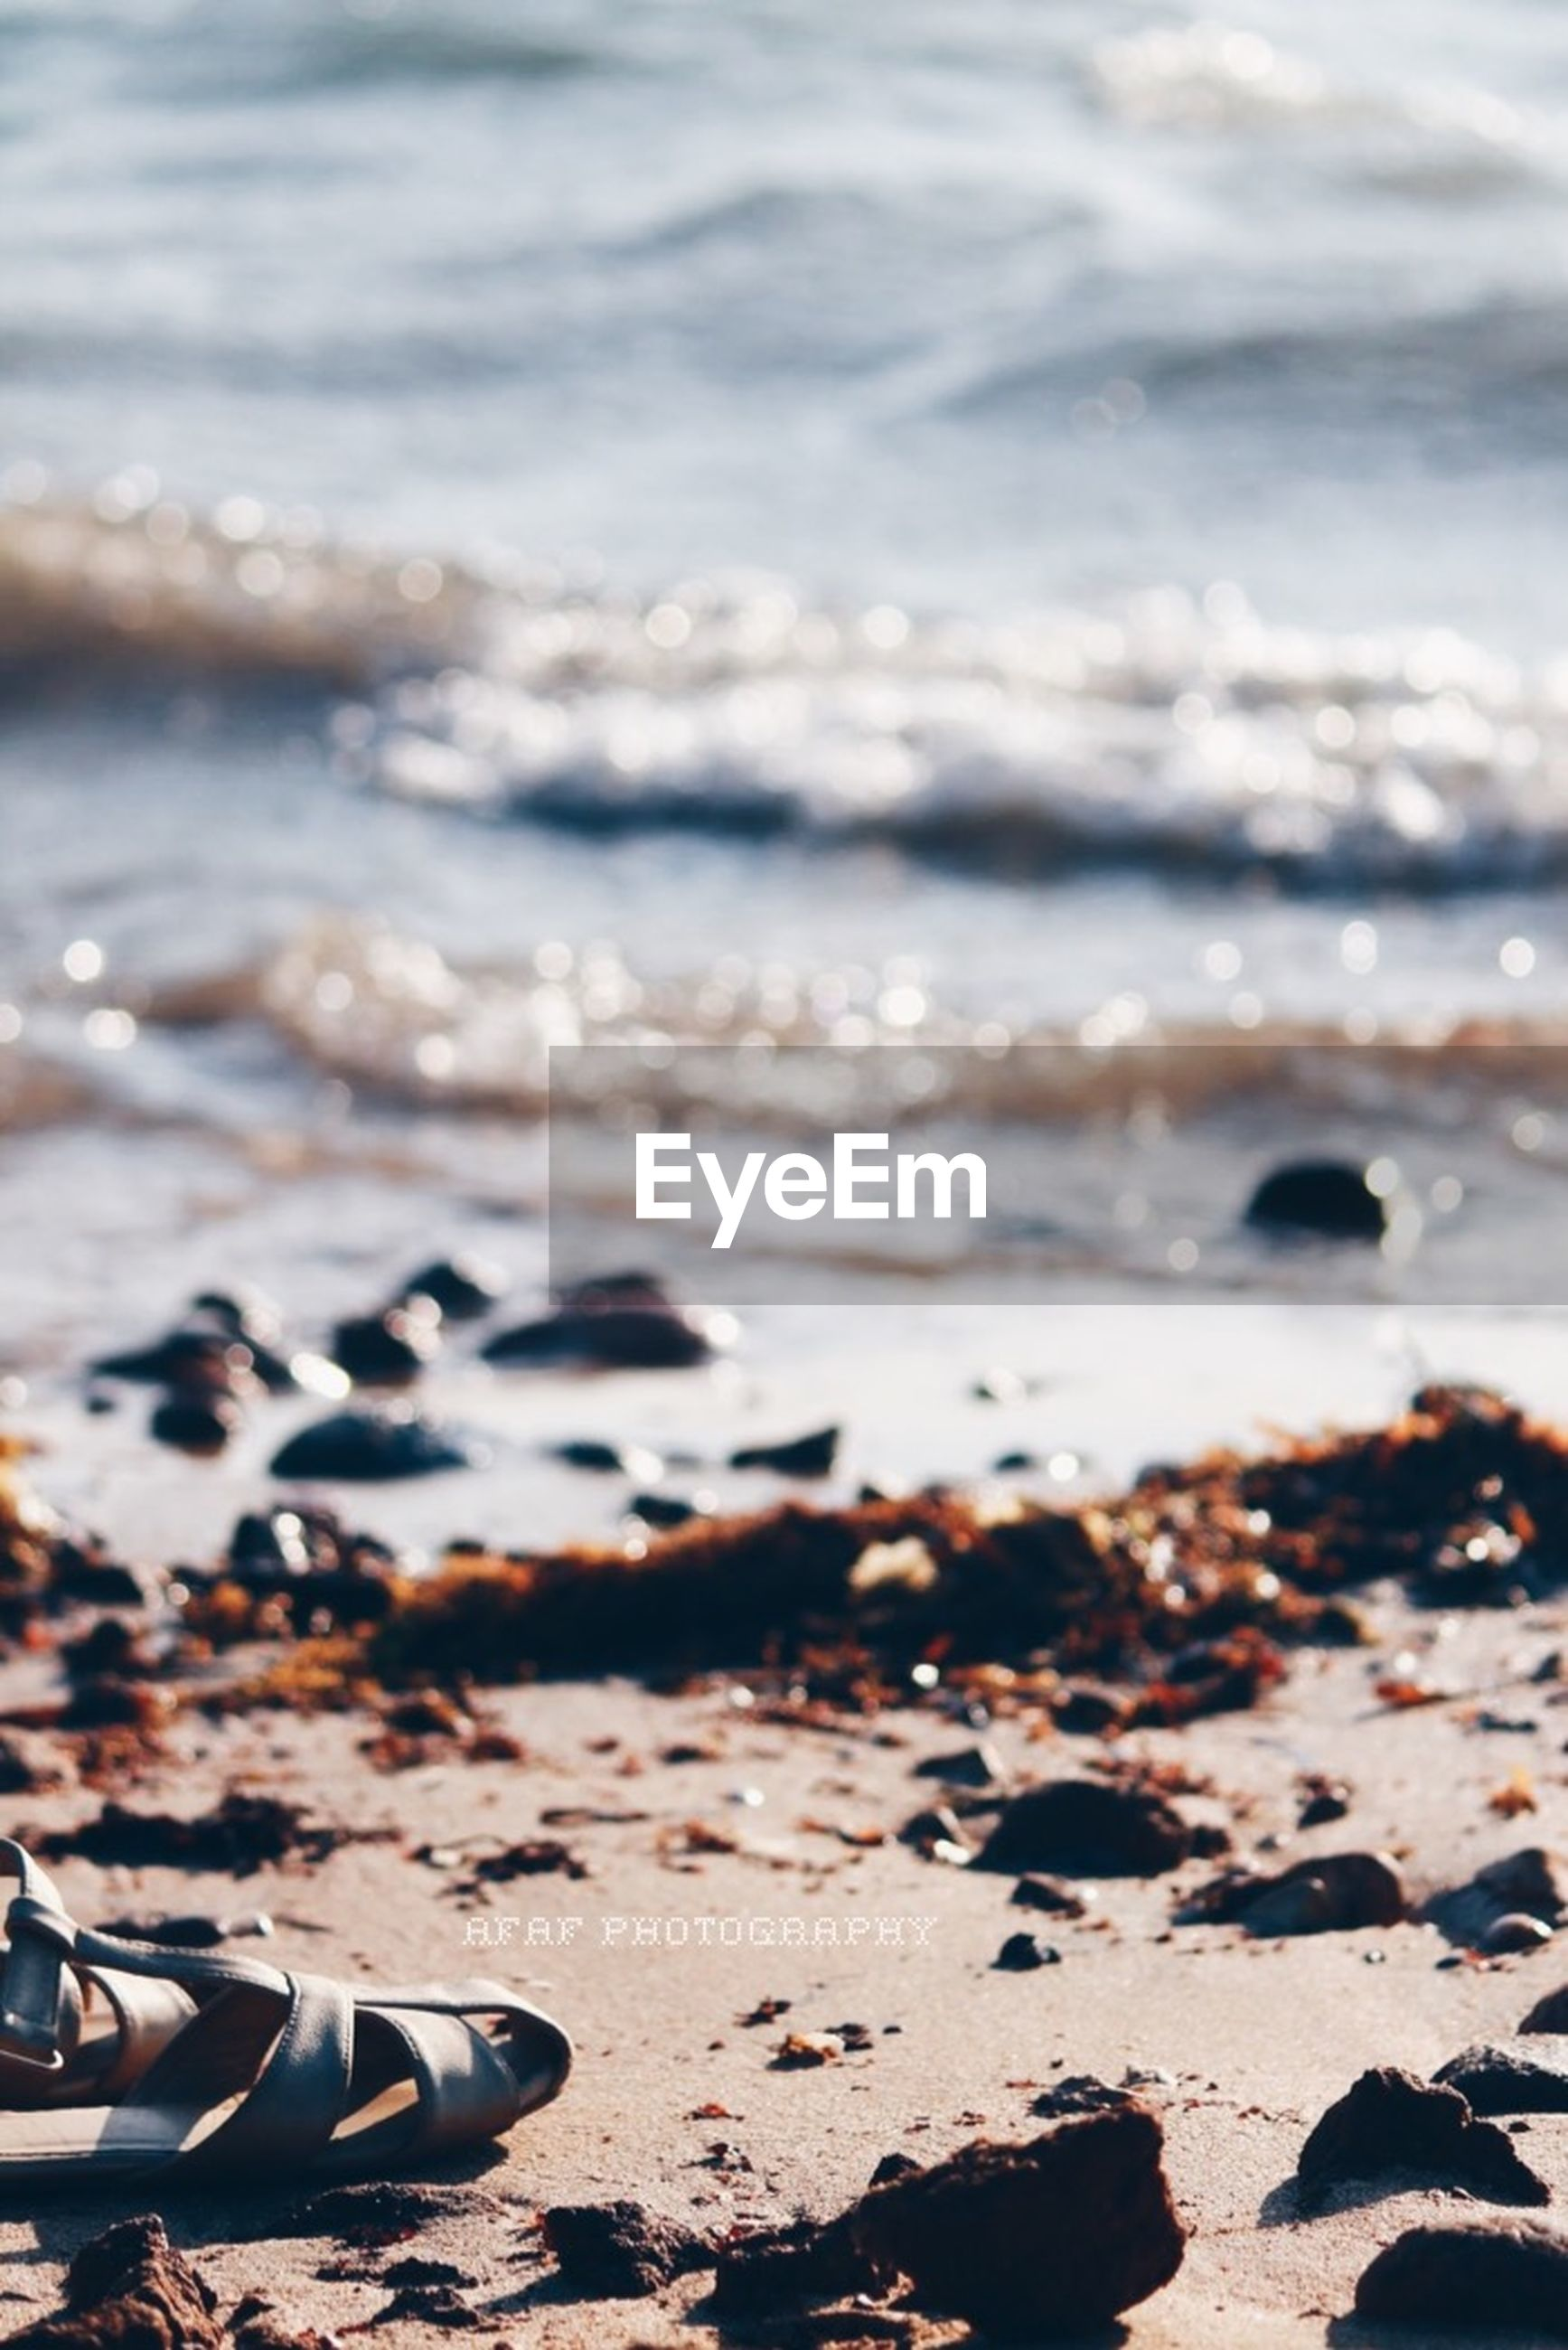 beach, water, shore, sea, sand, tranquility, selective focus, surface level, nature, focus on foreground, pebble, beauty in nature, wave, stone - object, outdoors, close-up, tranquil scene, surf, scenics, day